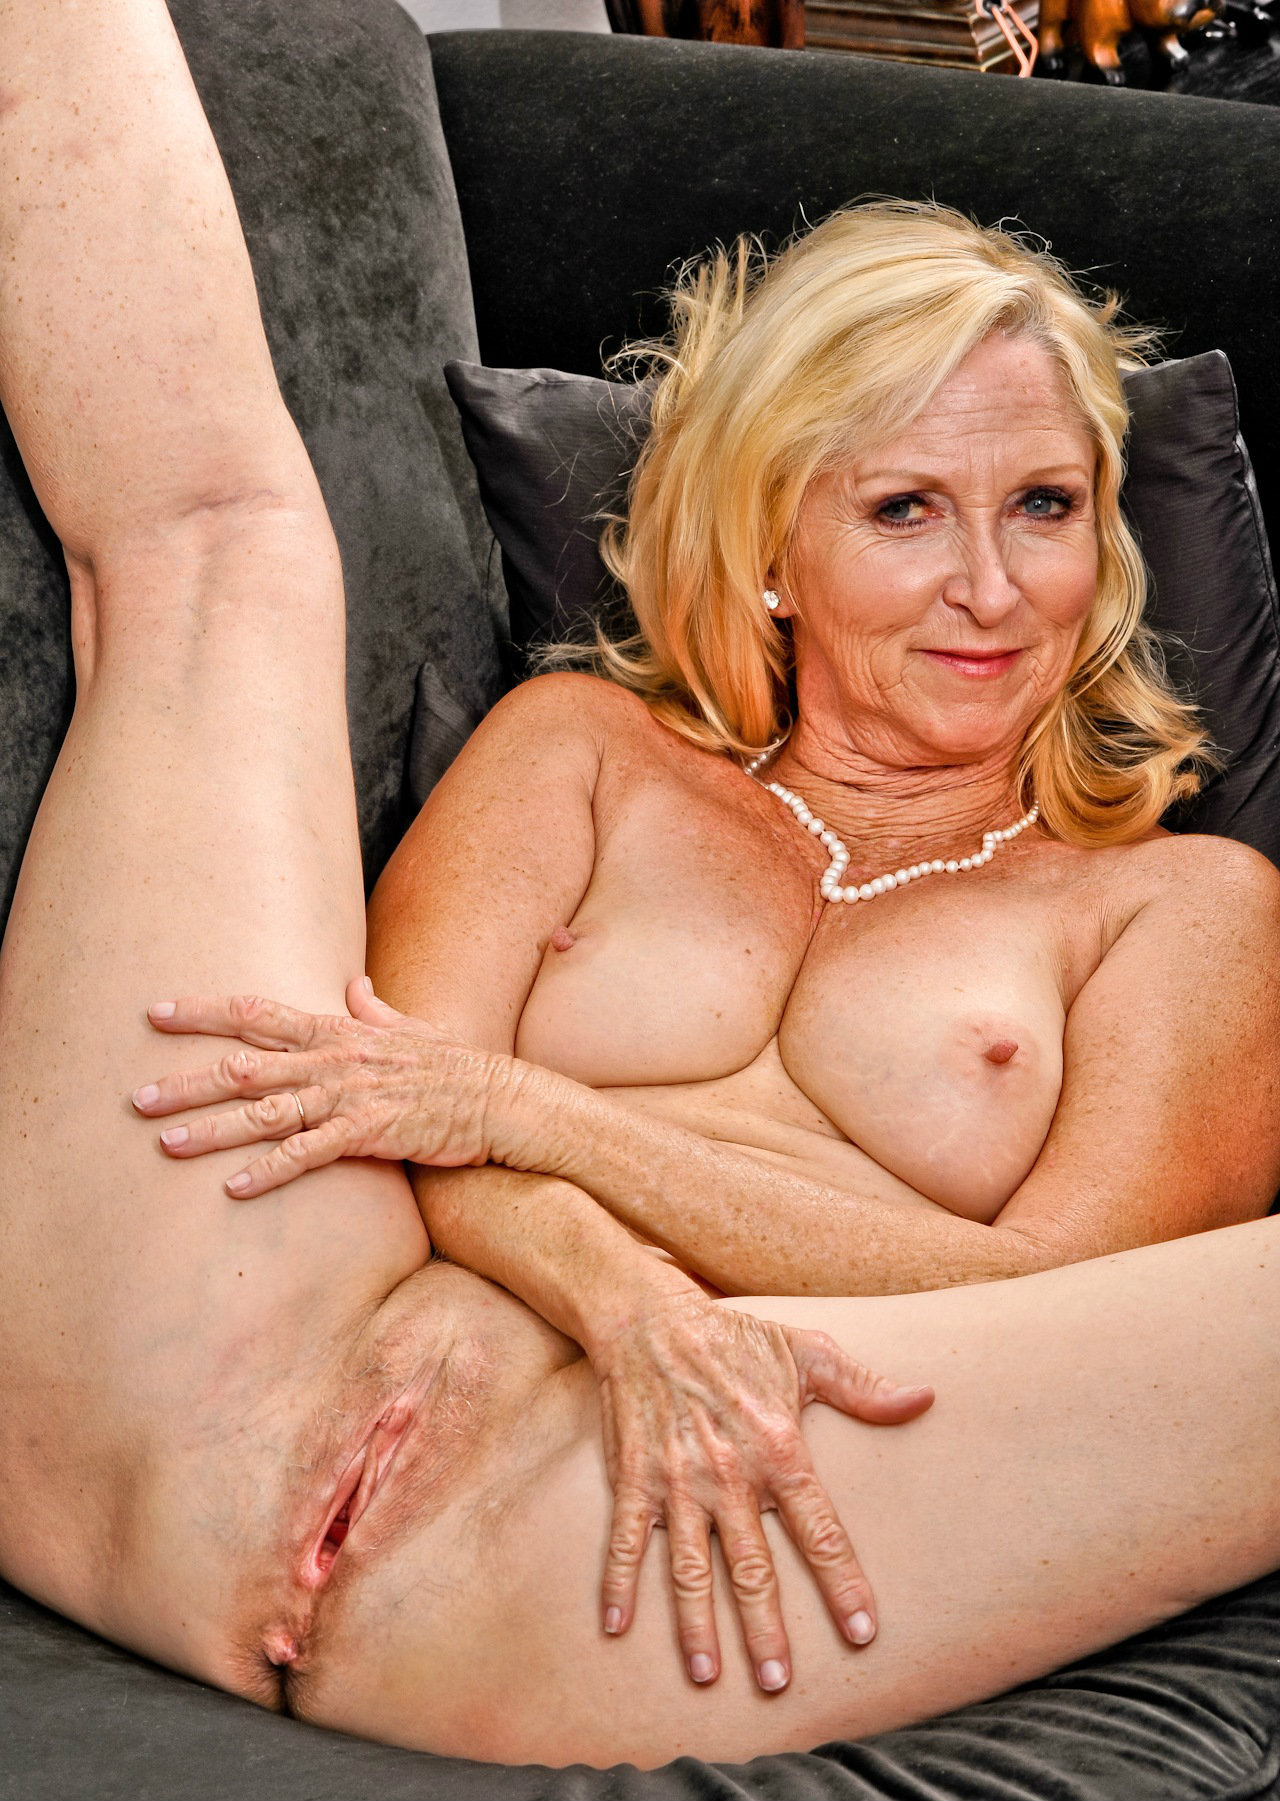 Almighty she's divorce pussy pictures very